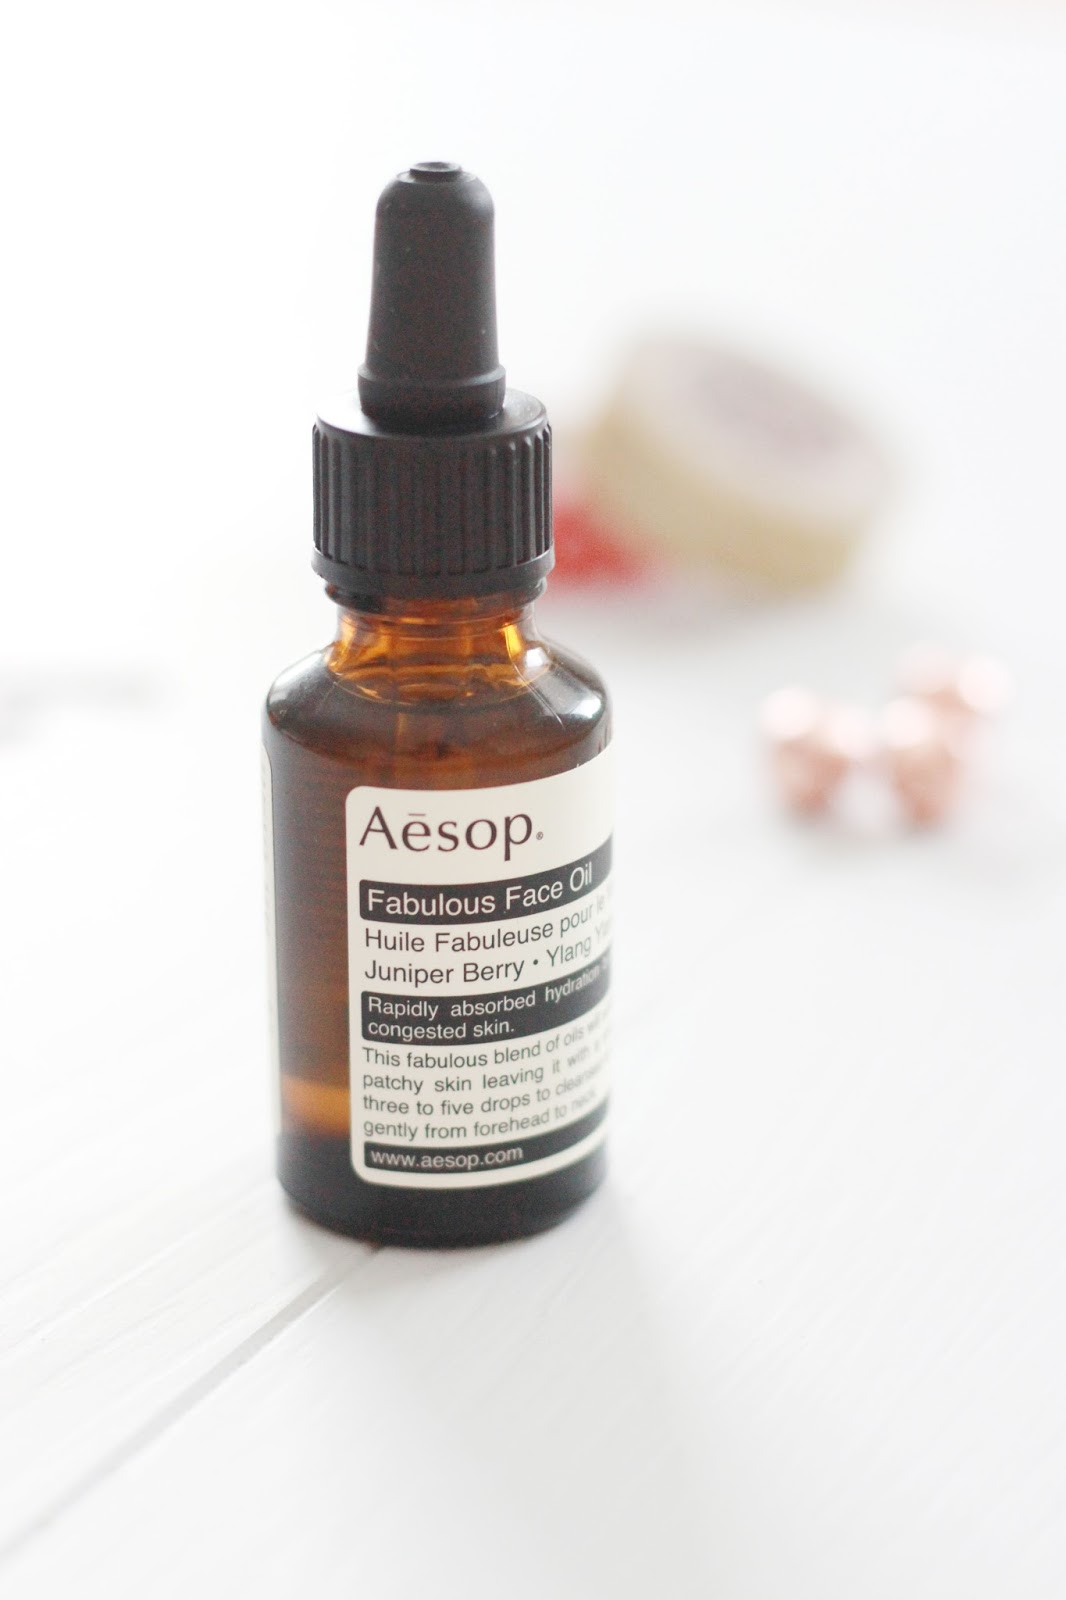 Aesop Fabulous Facial Oil